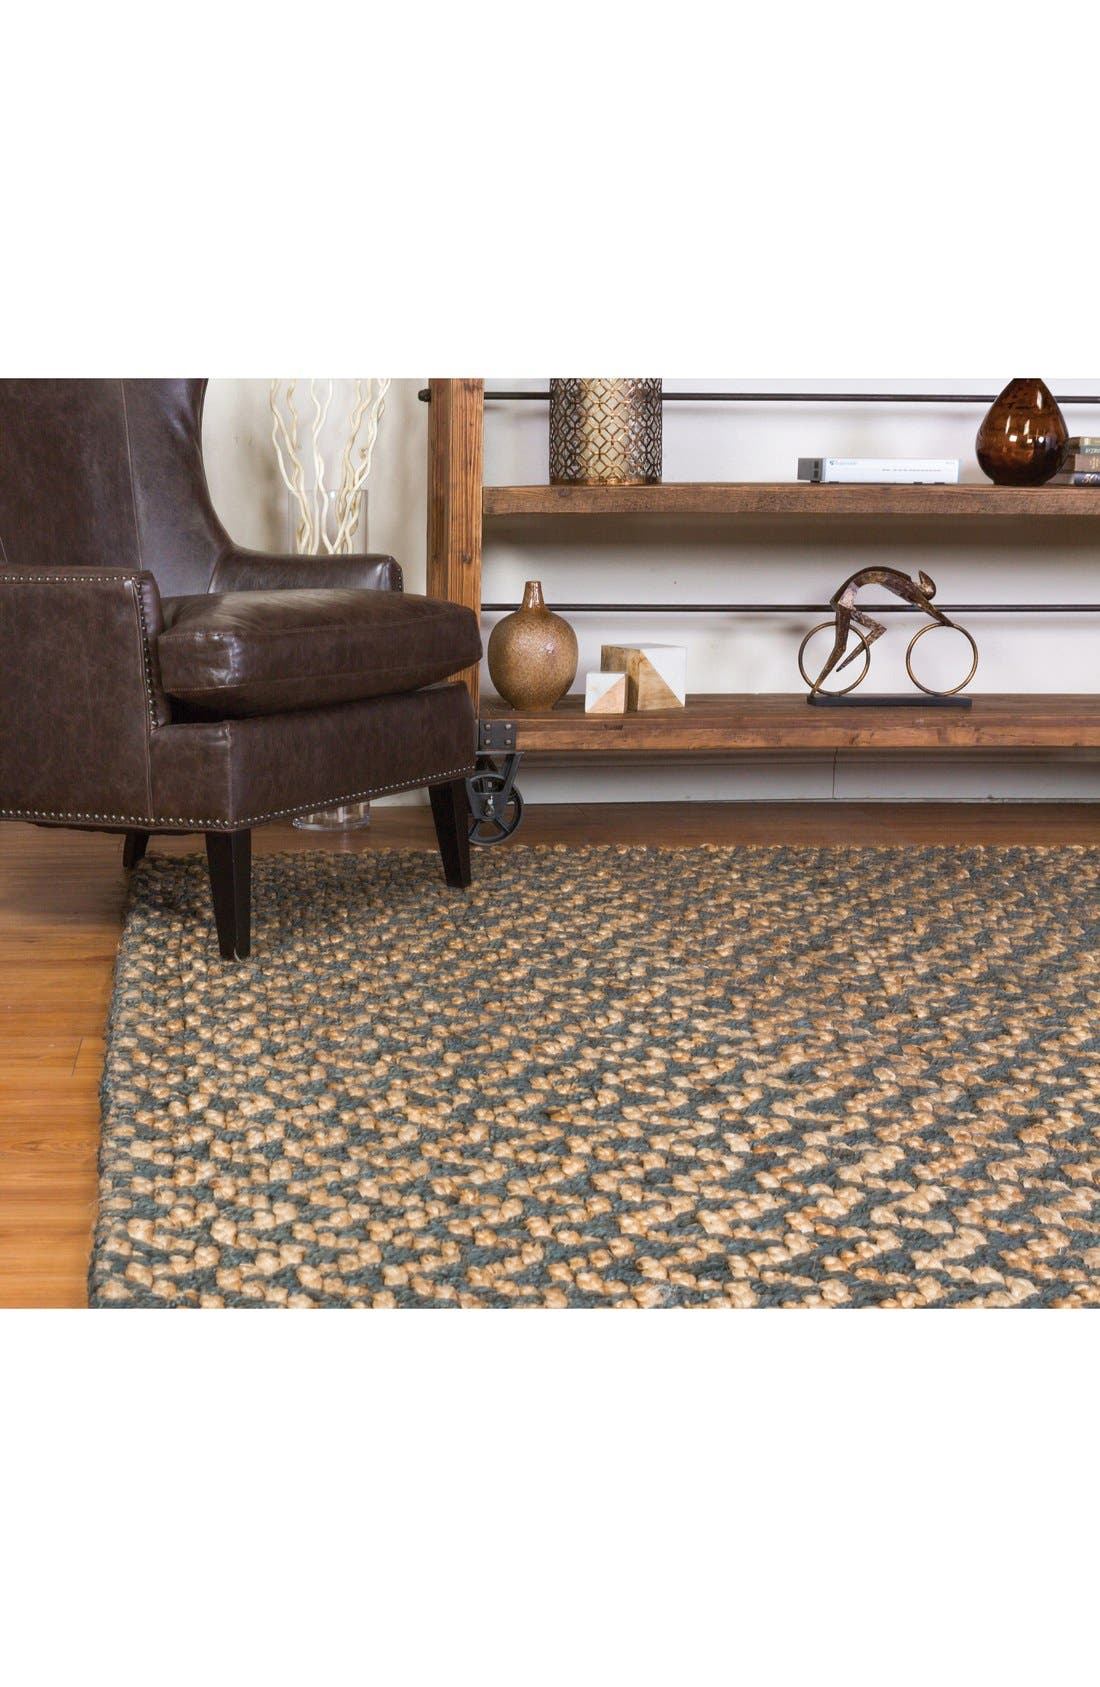 Herringbone Handwoven Rug,                             Alternate thumbnail 2, color,                             020